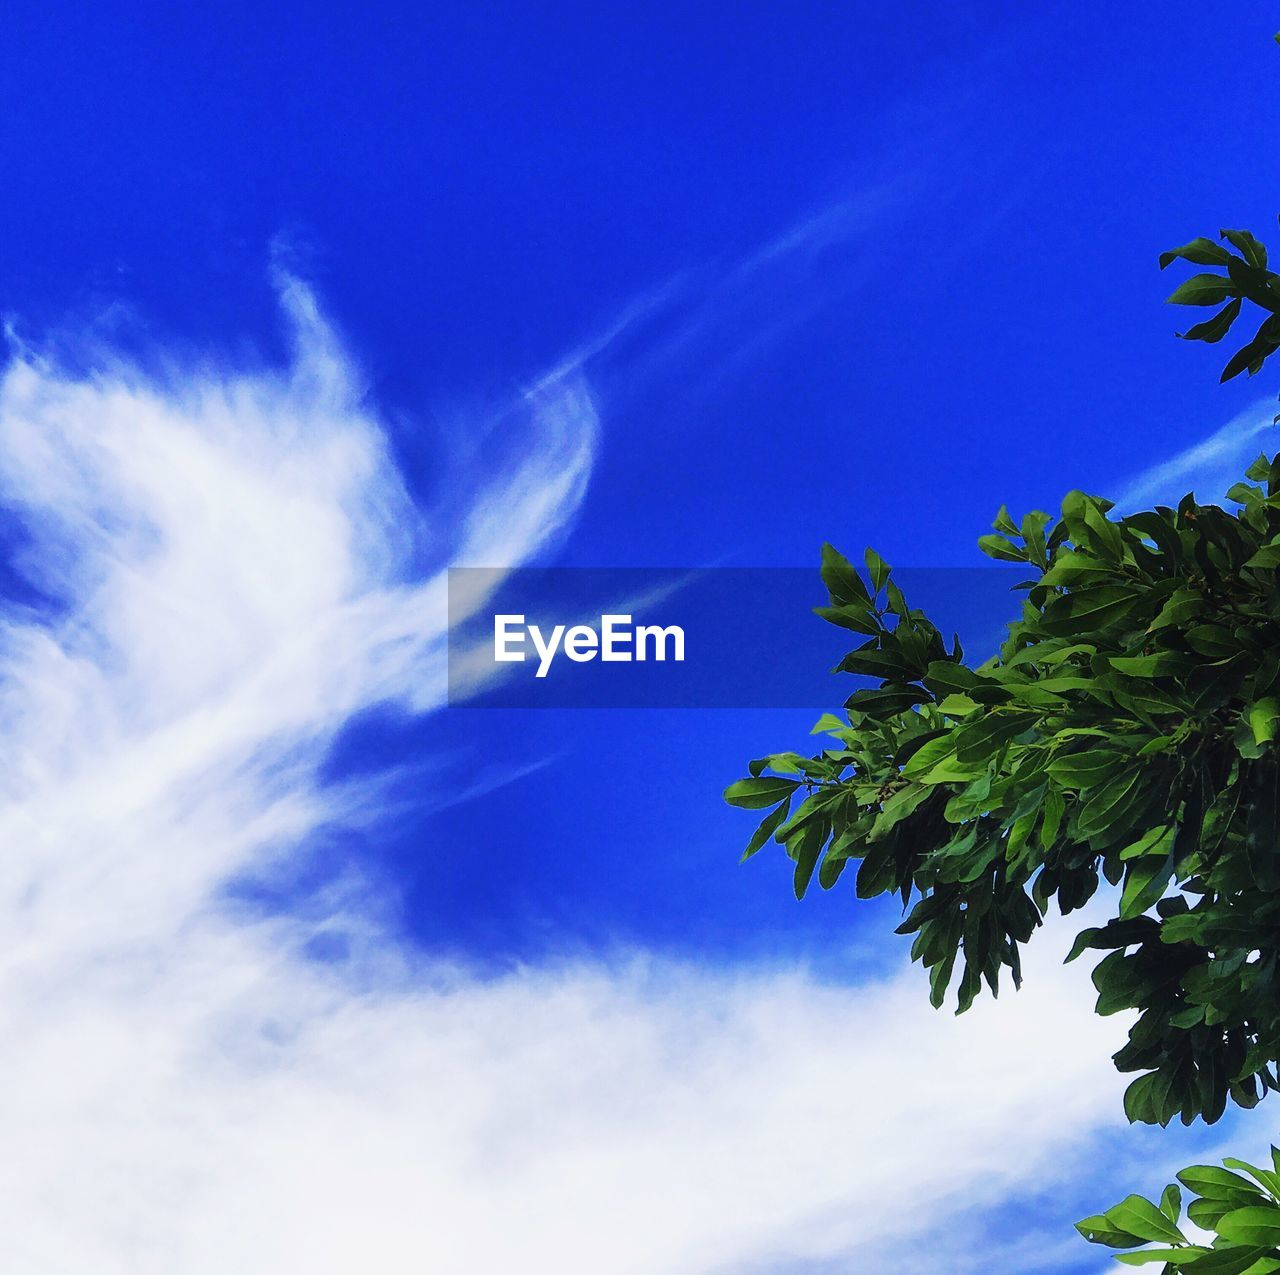 sky, blue, nature, growth, beauty in nature, low angle view, no people, leaf, cloud - sky, tree, day, tranquility, plant, outdoors, scenics, freshness